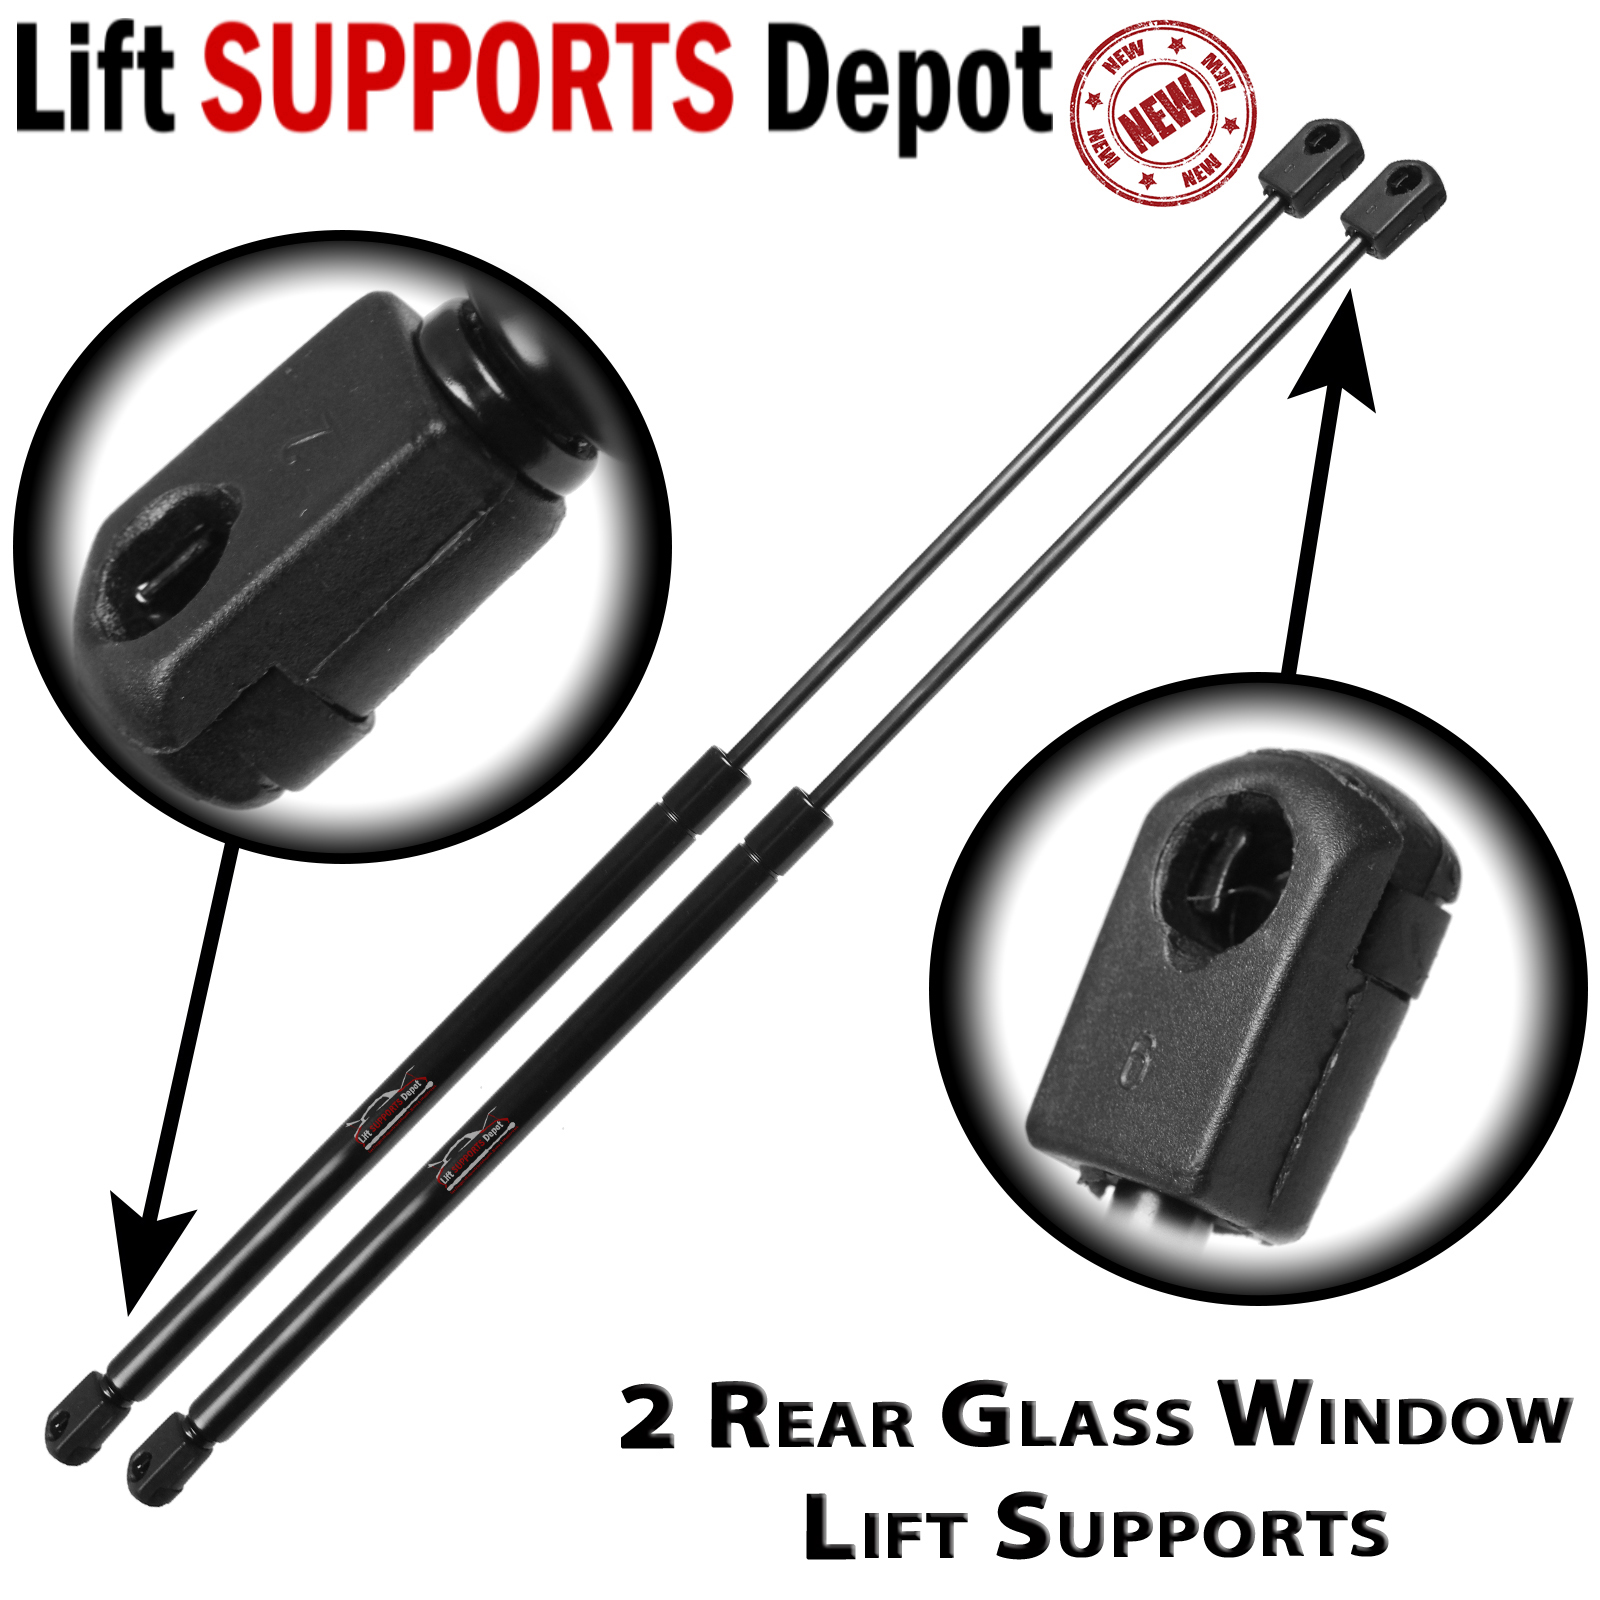 Qty (2) Fits Suburban Tahoe Escalade 2007 To 2011 Rear Window Lift Supports Struts - PM3019